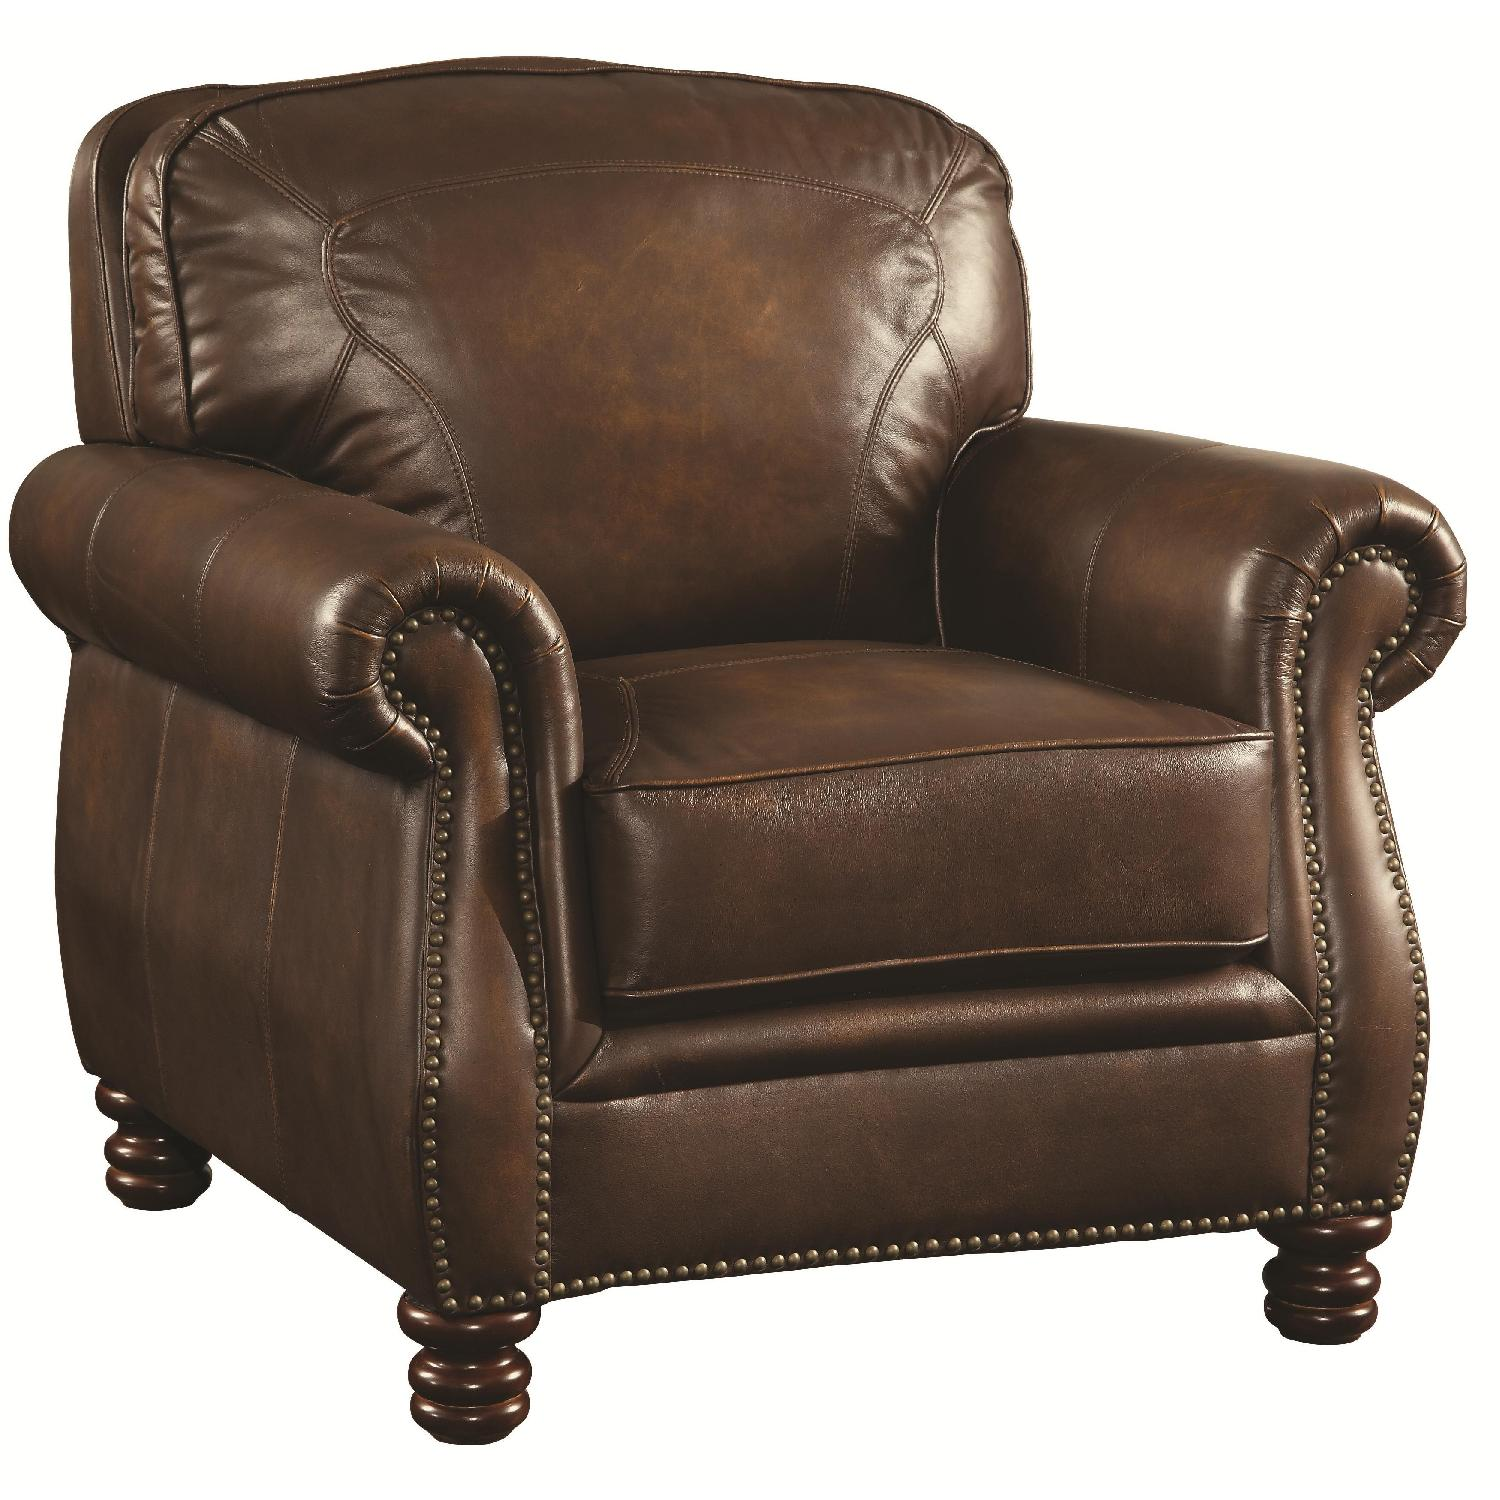 Stately Club Chair in Full Hand-Rubbed Brown Leather w/ Rolled Arms & Nailhead Accent